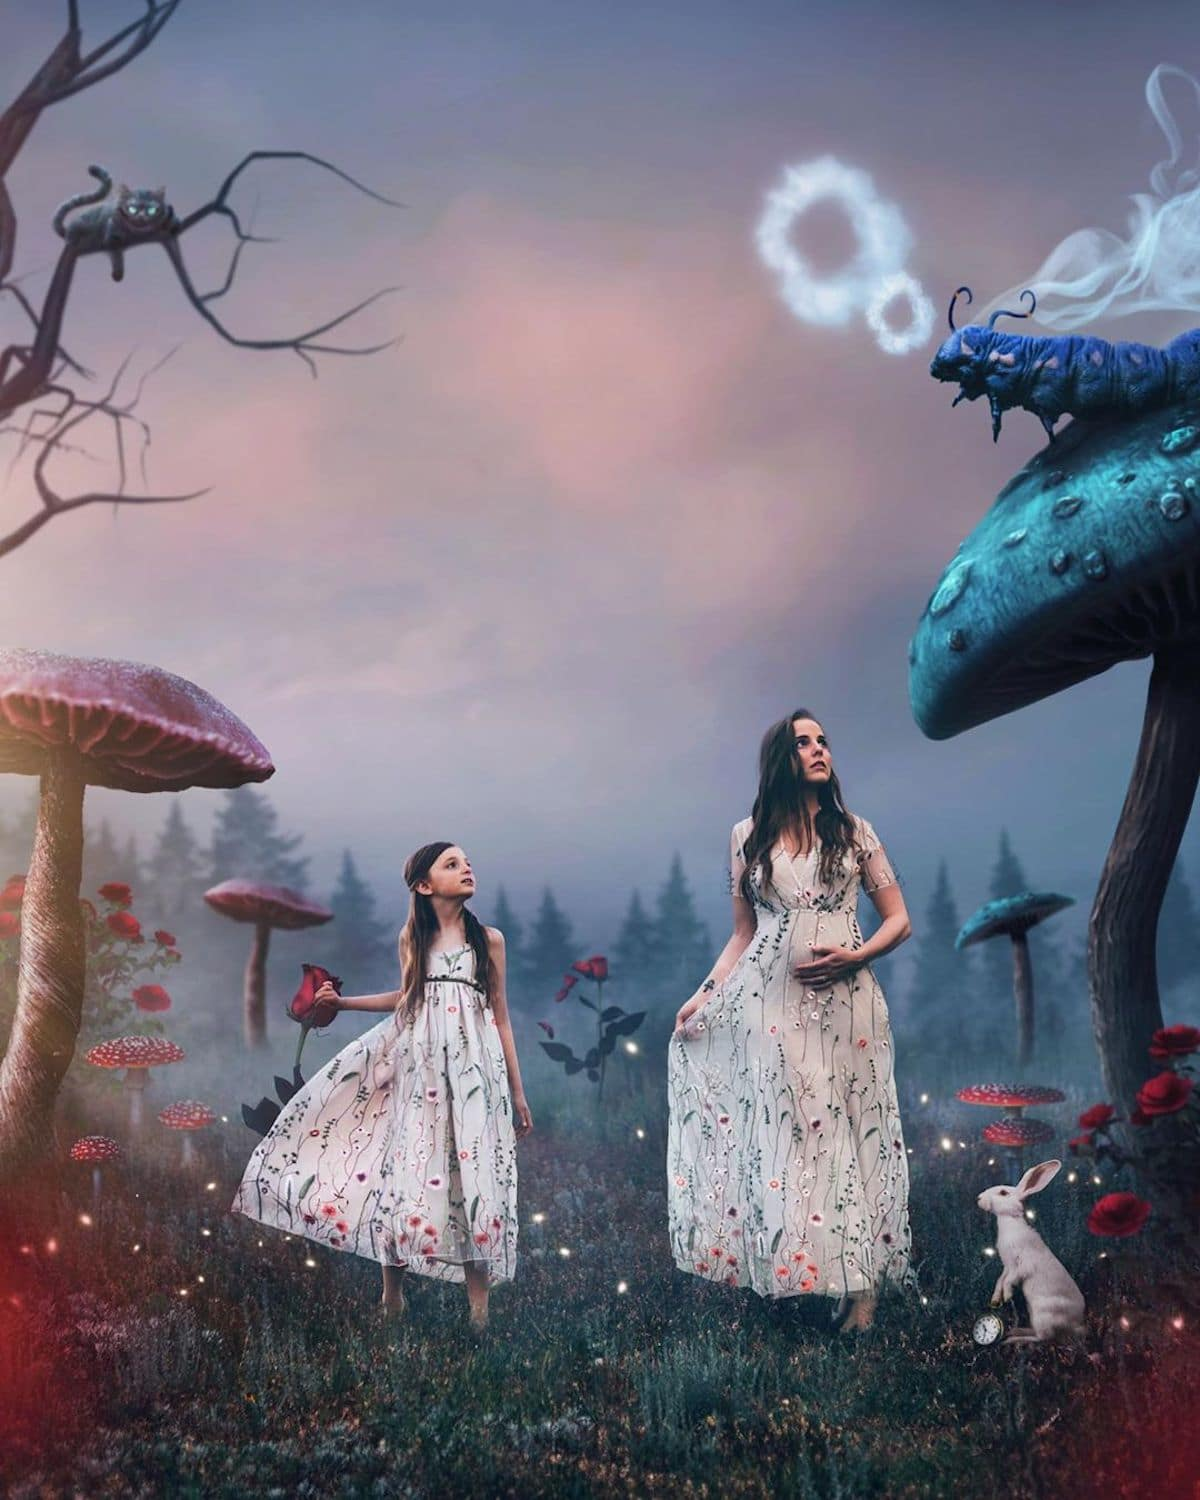 Fantastical Photos by Alexandria's Lens